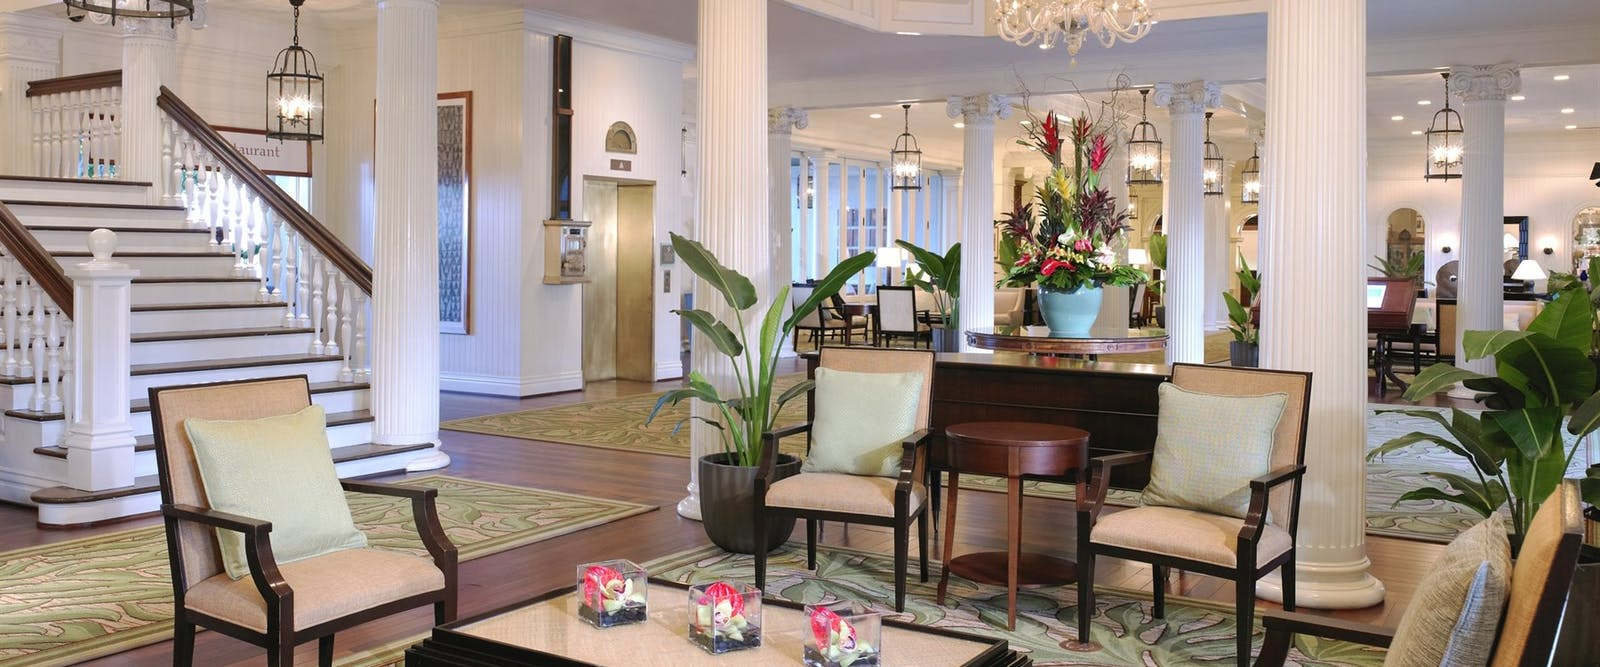 Lobby at Moana Surfrider, A Westin Resort